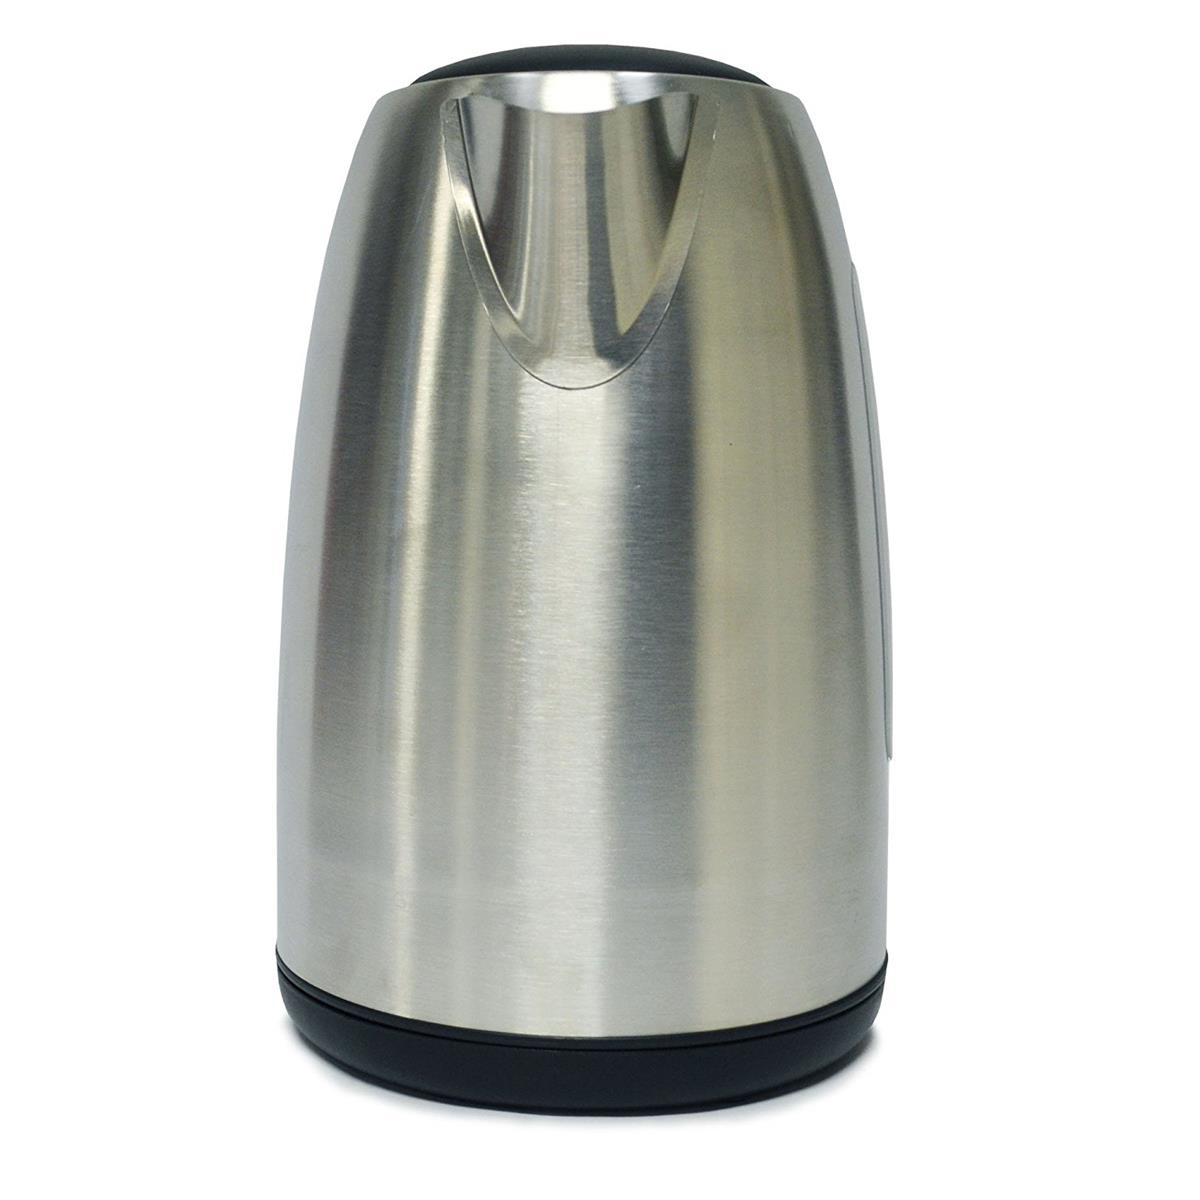 Igenix Kettle Cordless 2200W 1.7 Litre Brushed Stainless Steel Ref IG7731